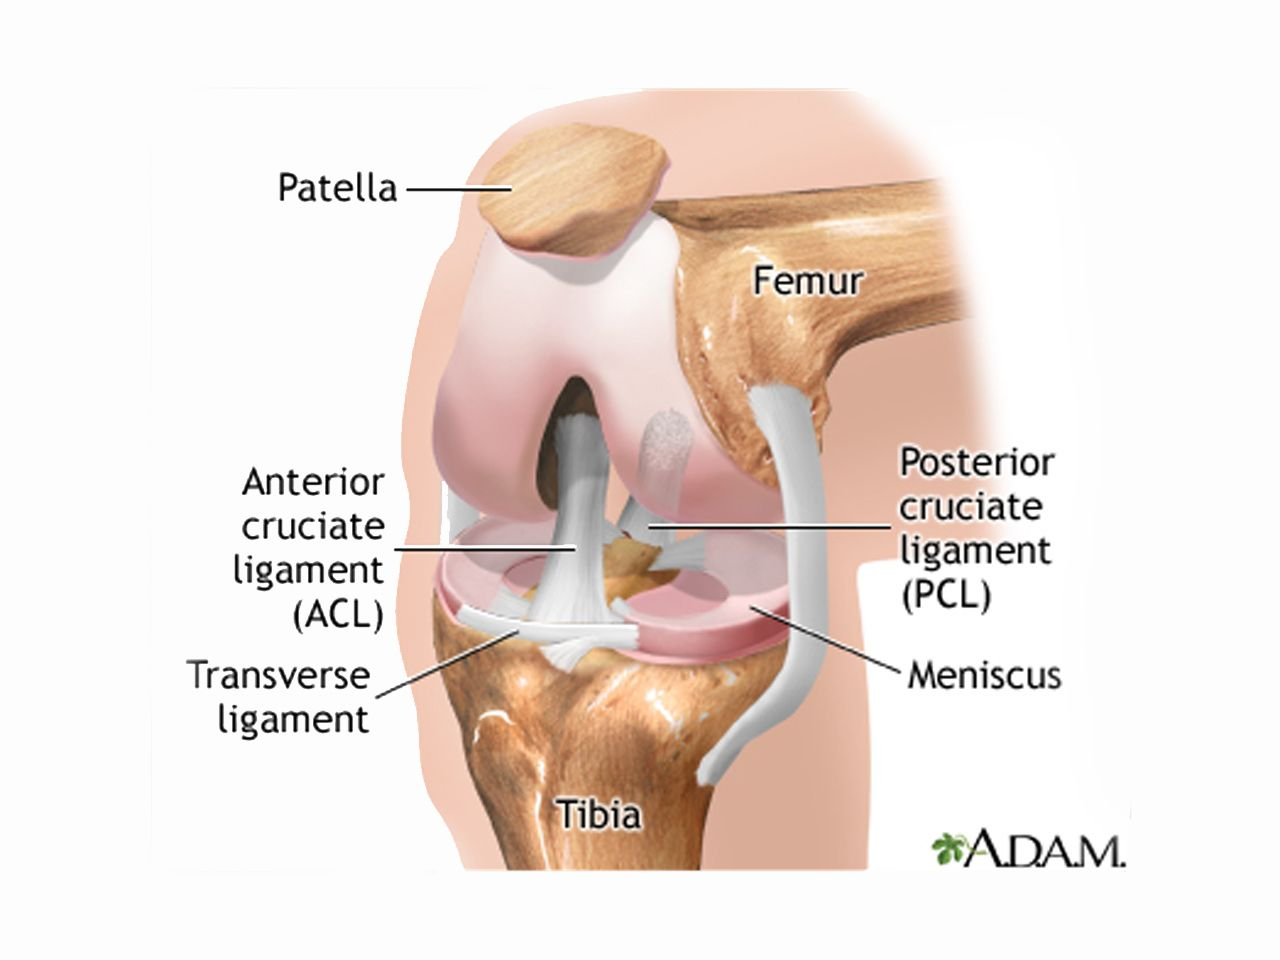 Torn meniscus treatments physical therapy just as good as surgery about one third of people over 50 have a tear in one meniscus cartilage pooptronica